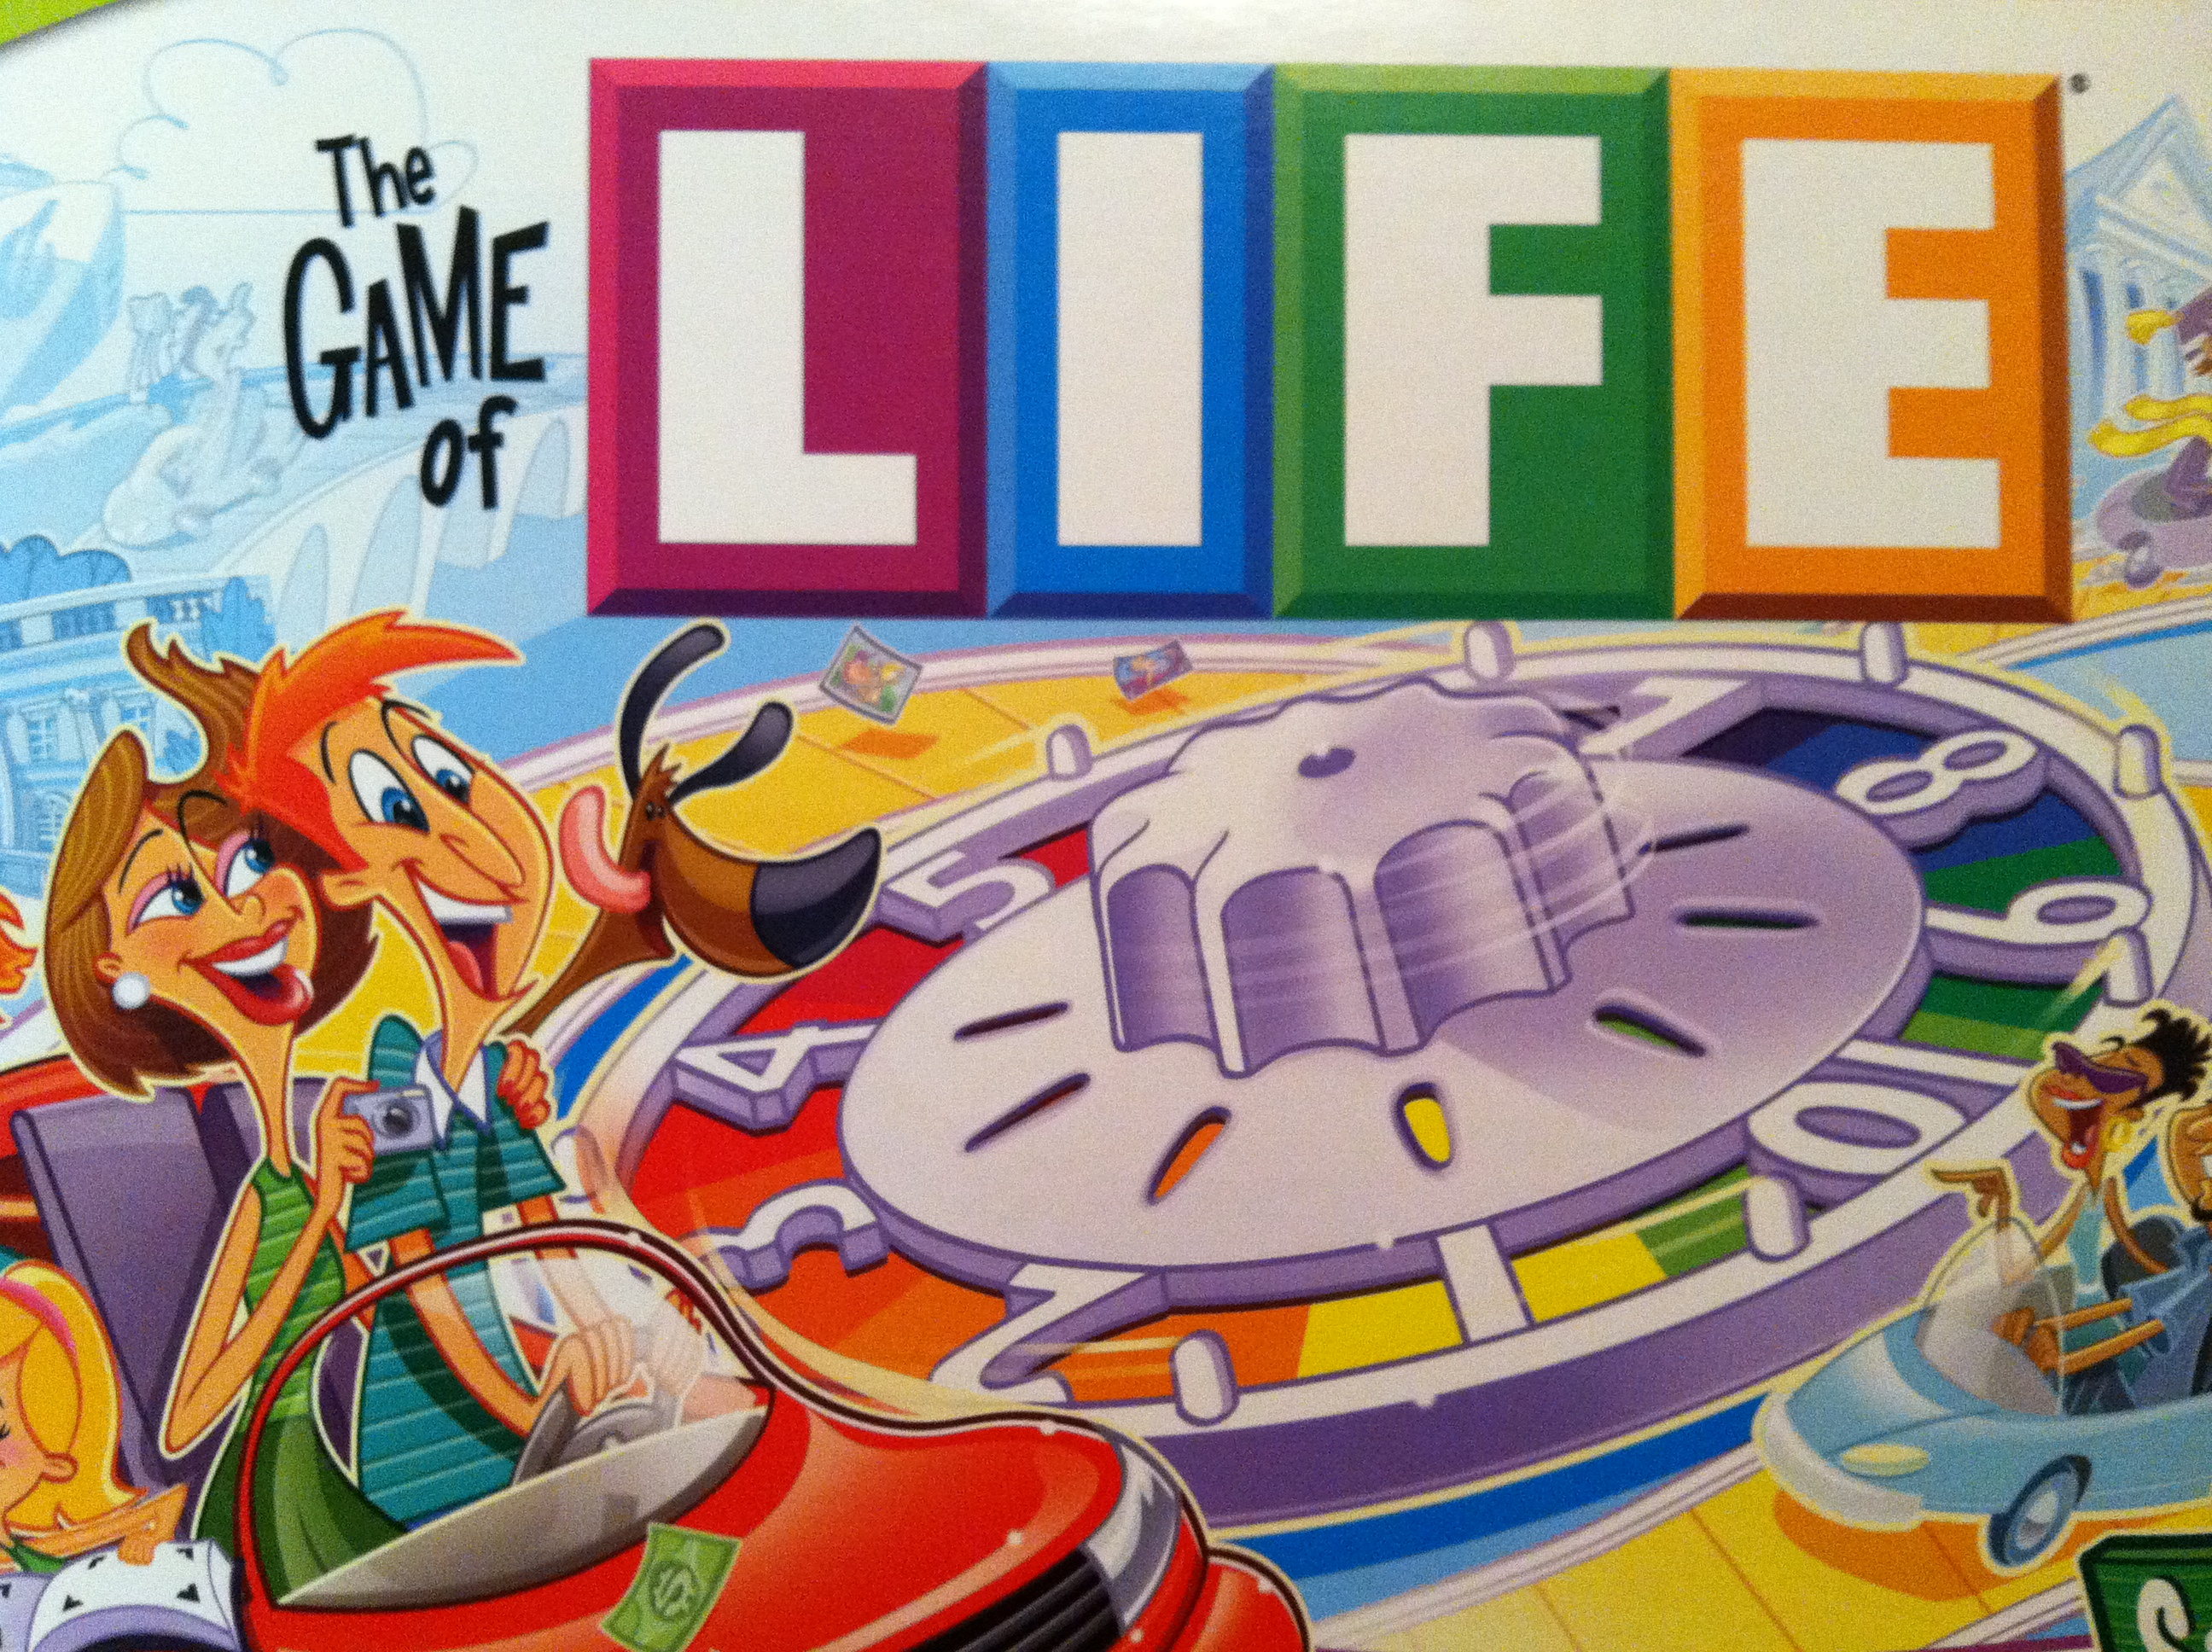 THE GAME OF LIFE - by FLORENCE SCOVEL SHINN - PAPERBACK - 50TH GOLDEN EDITION